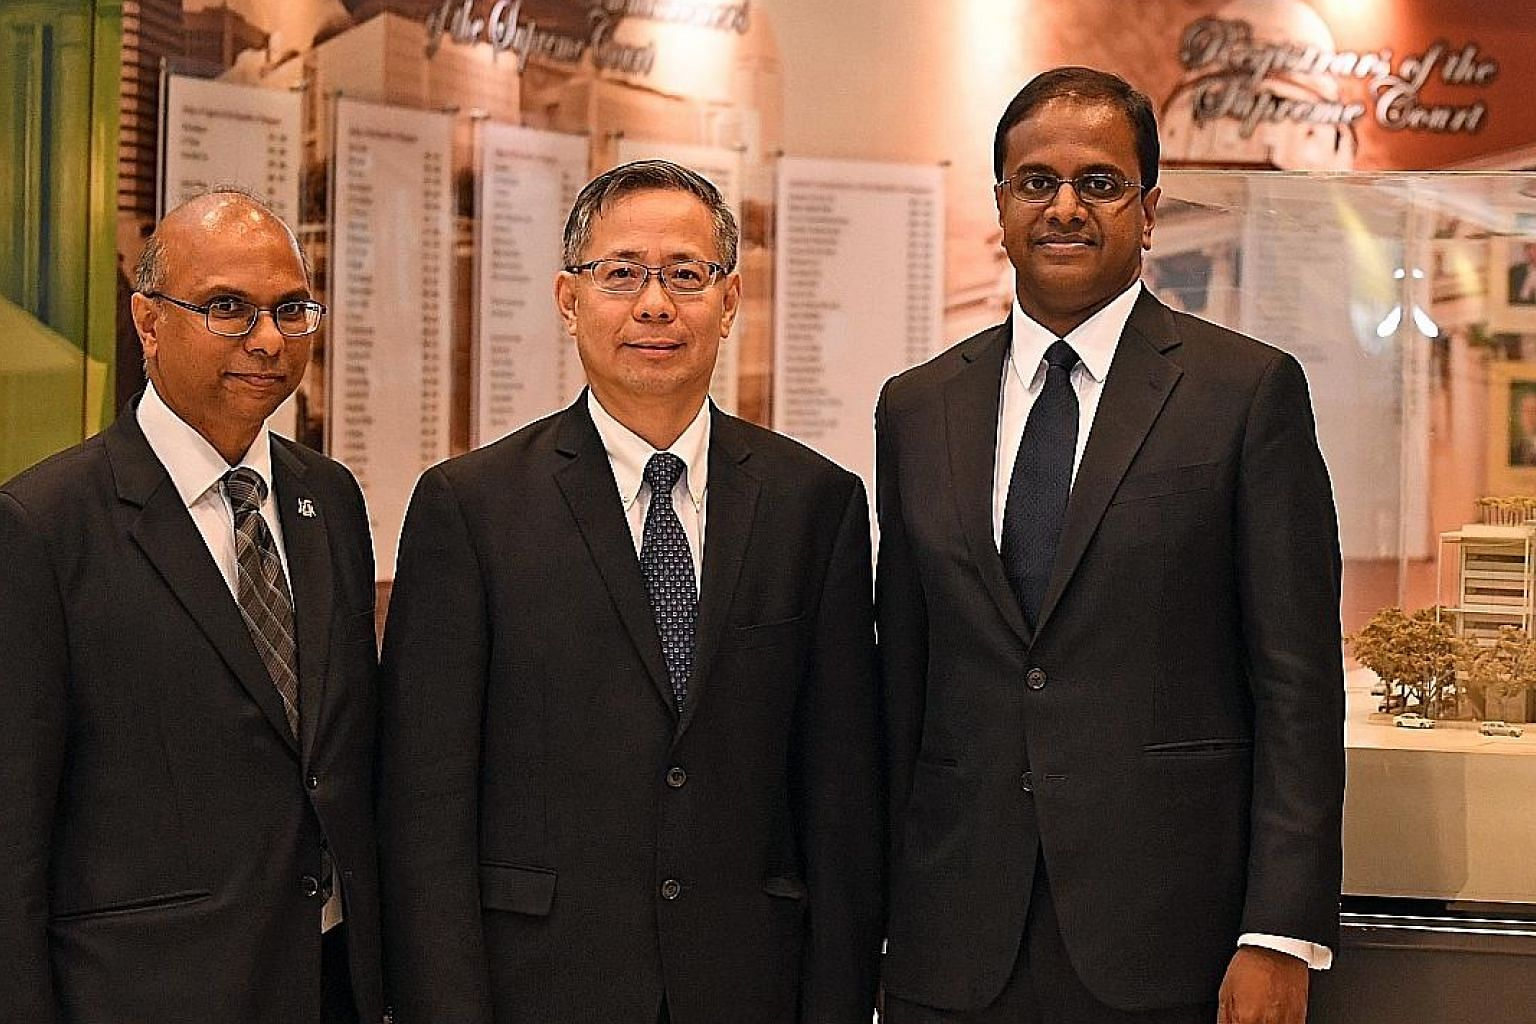 (From left) Mr Gregory Vijayendran, Mr Foo Chee Hock and Mr Siraj Omar were among those appointed Senior Counsels yesterday. They advise junior lawyers to keep believing in their dreams, use their knowledge of the law to help their clients and to con